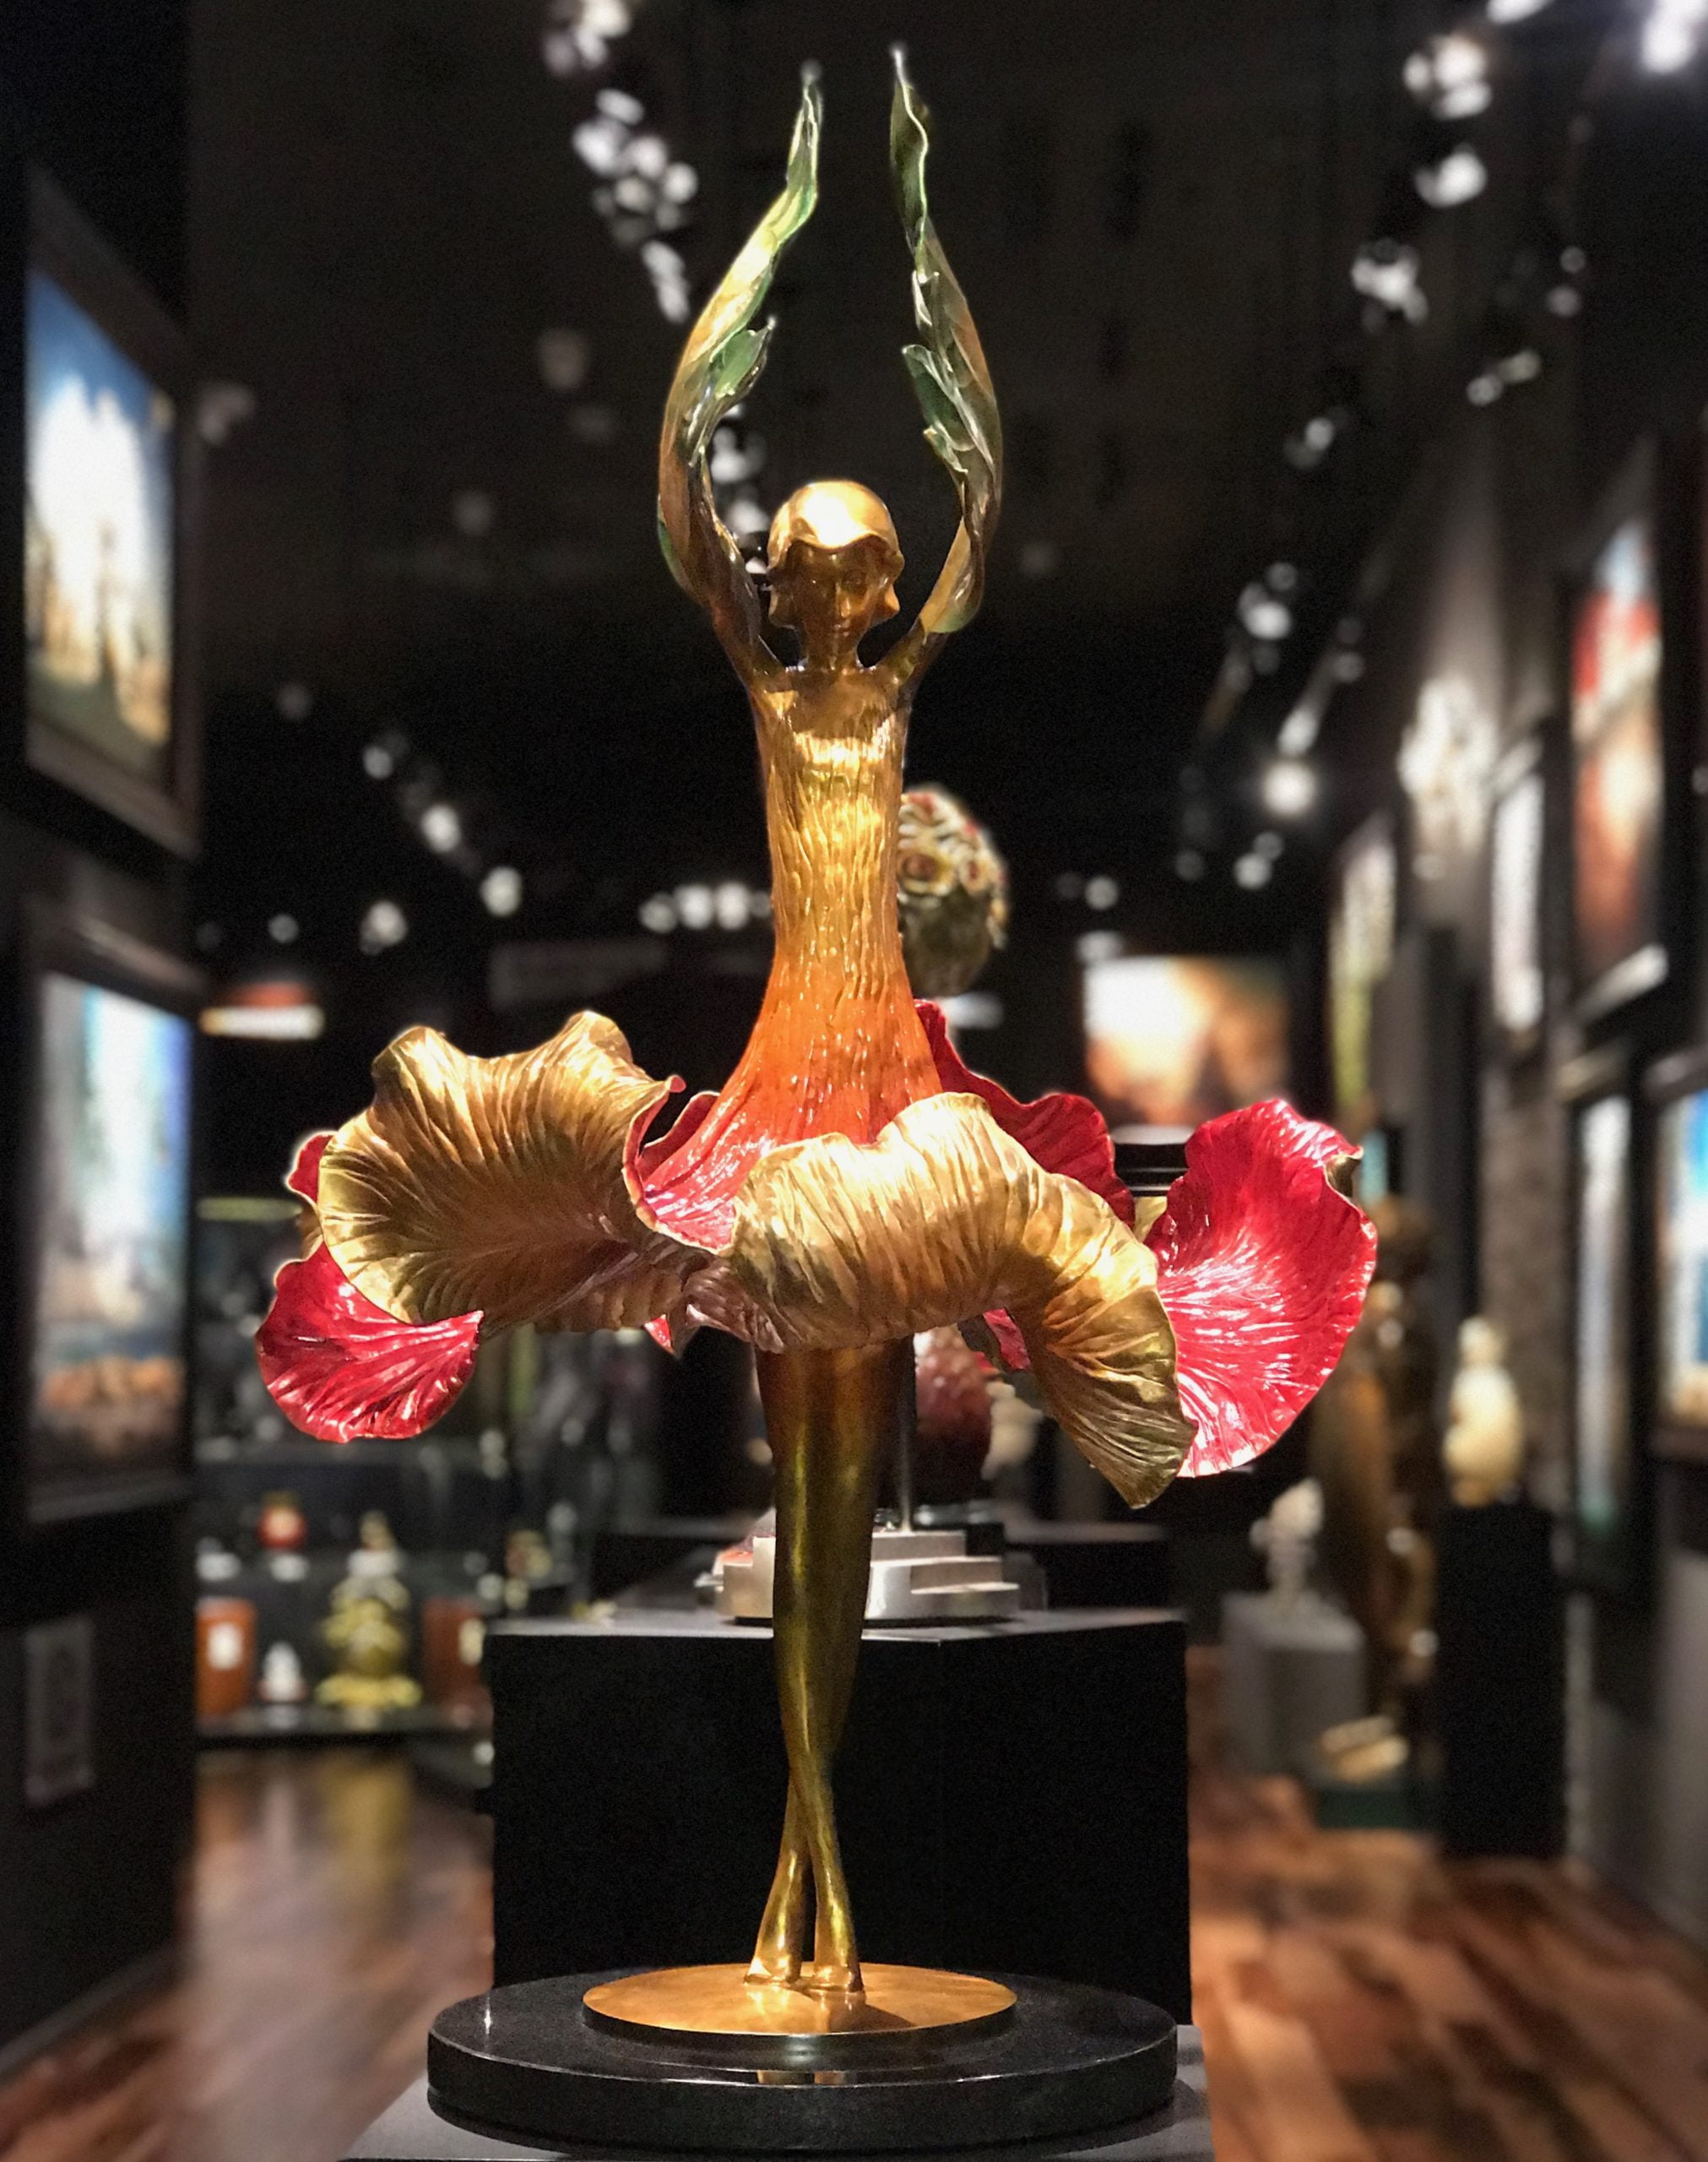 Vladimir Kush Presents His New Release 'Hibiscus Dancer' Bronze Sculpture